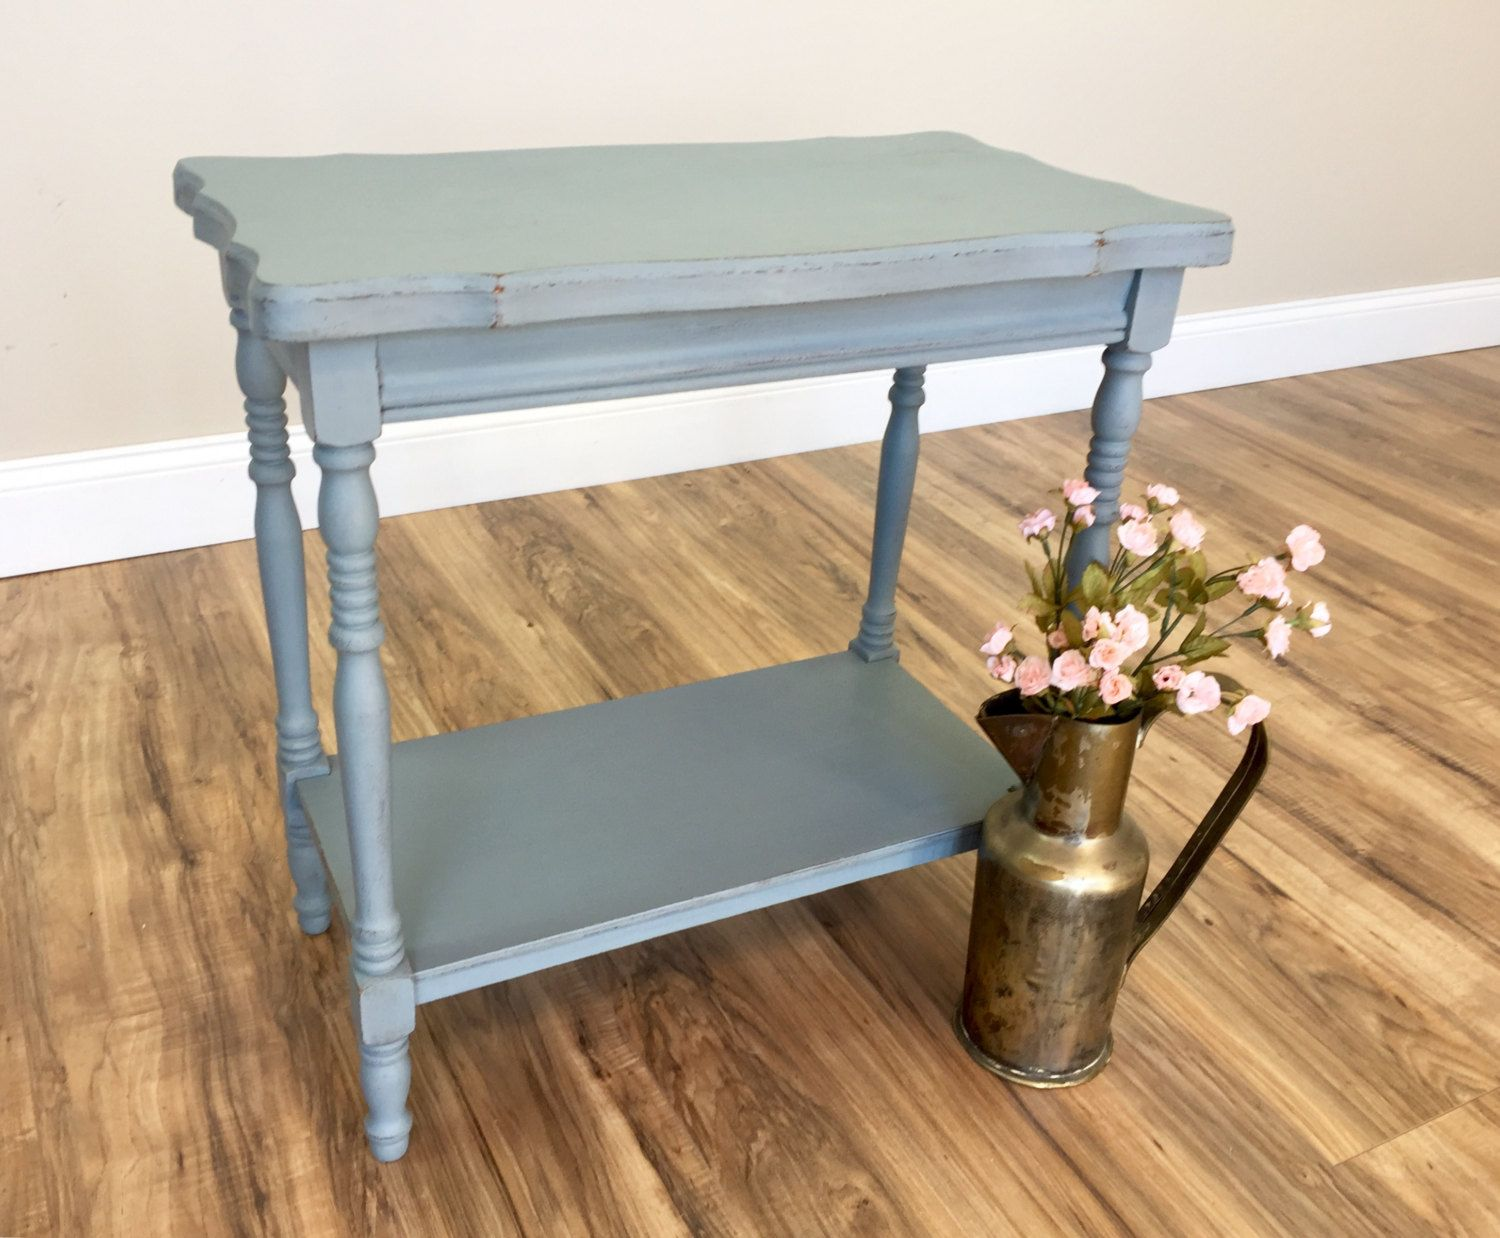 vintage end table blue side distressed furniture sofa small accent tables living room leather lounge chair circle dining set square metal desk legs attic heirlooms ikea tall vita